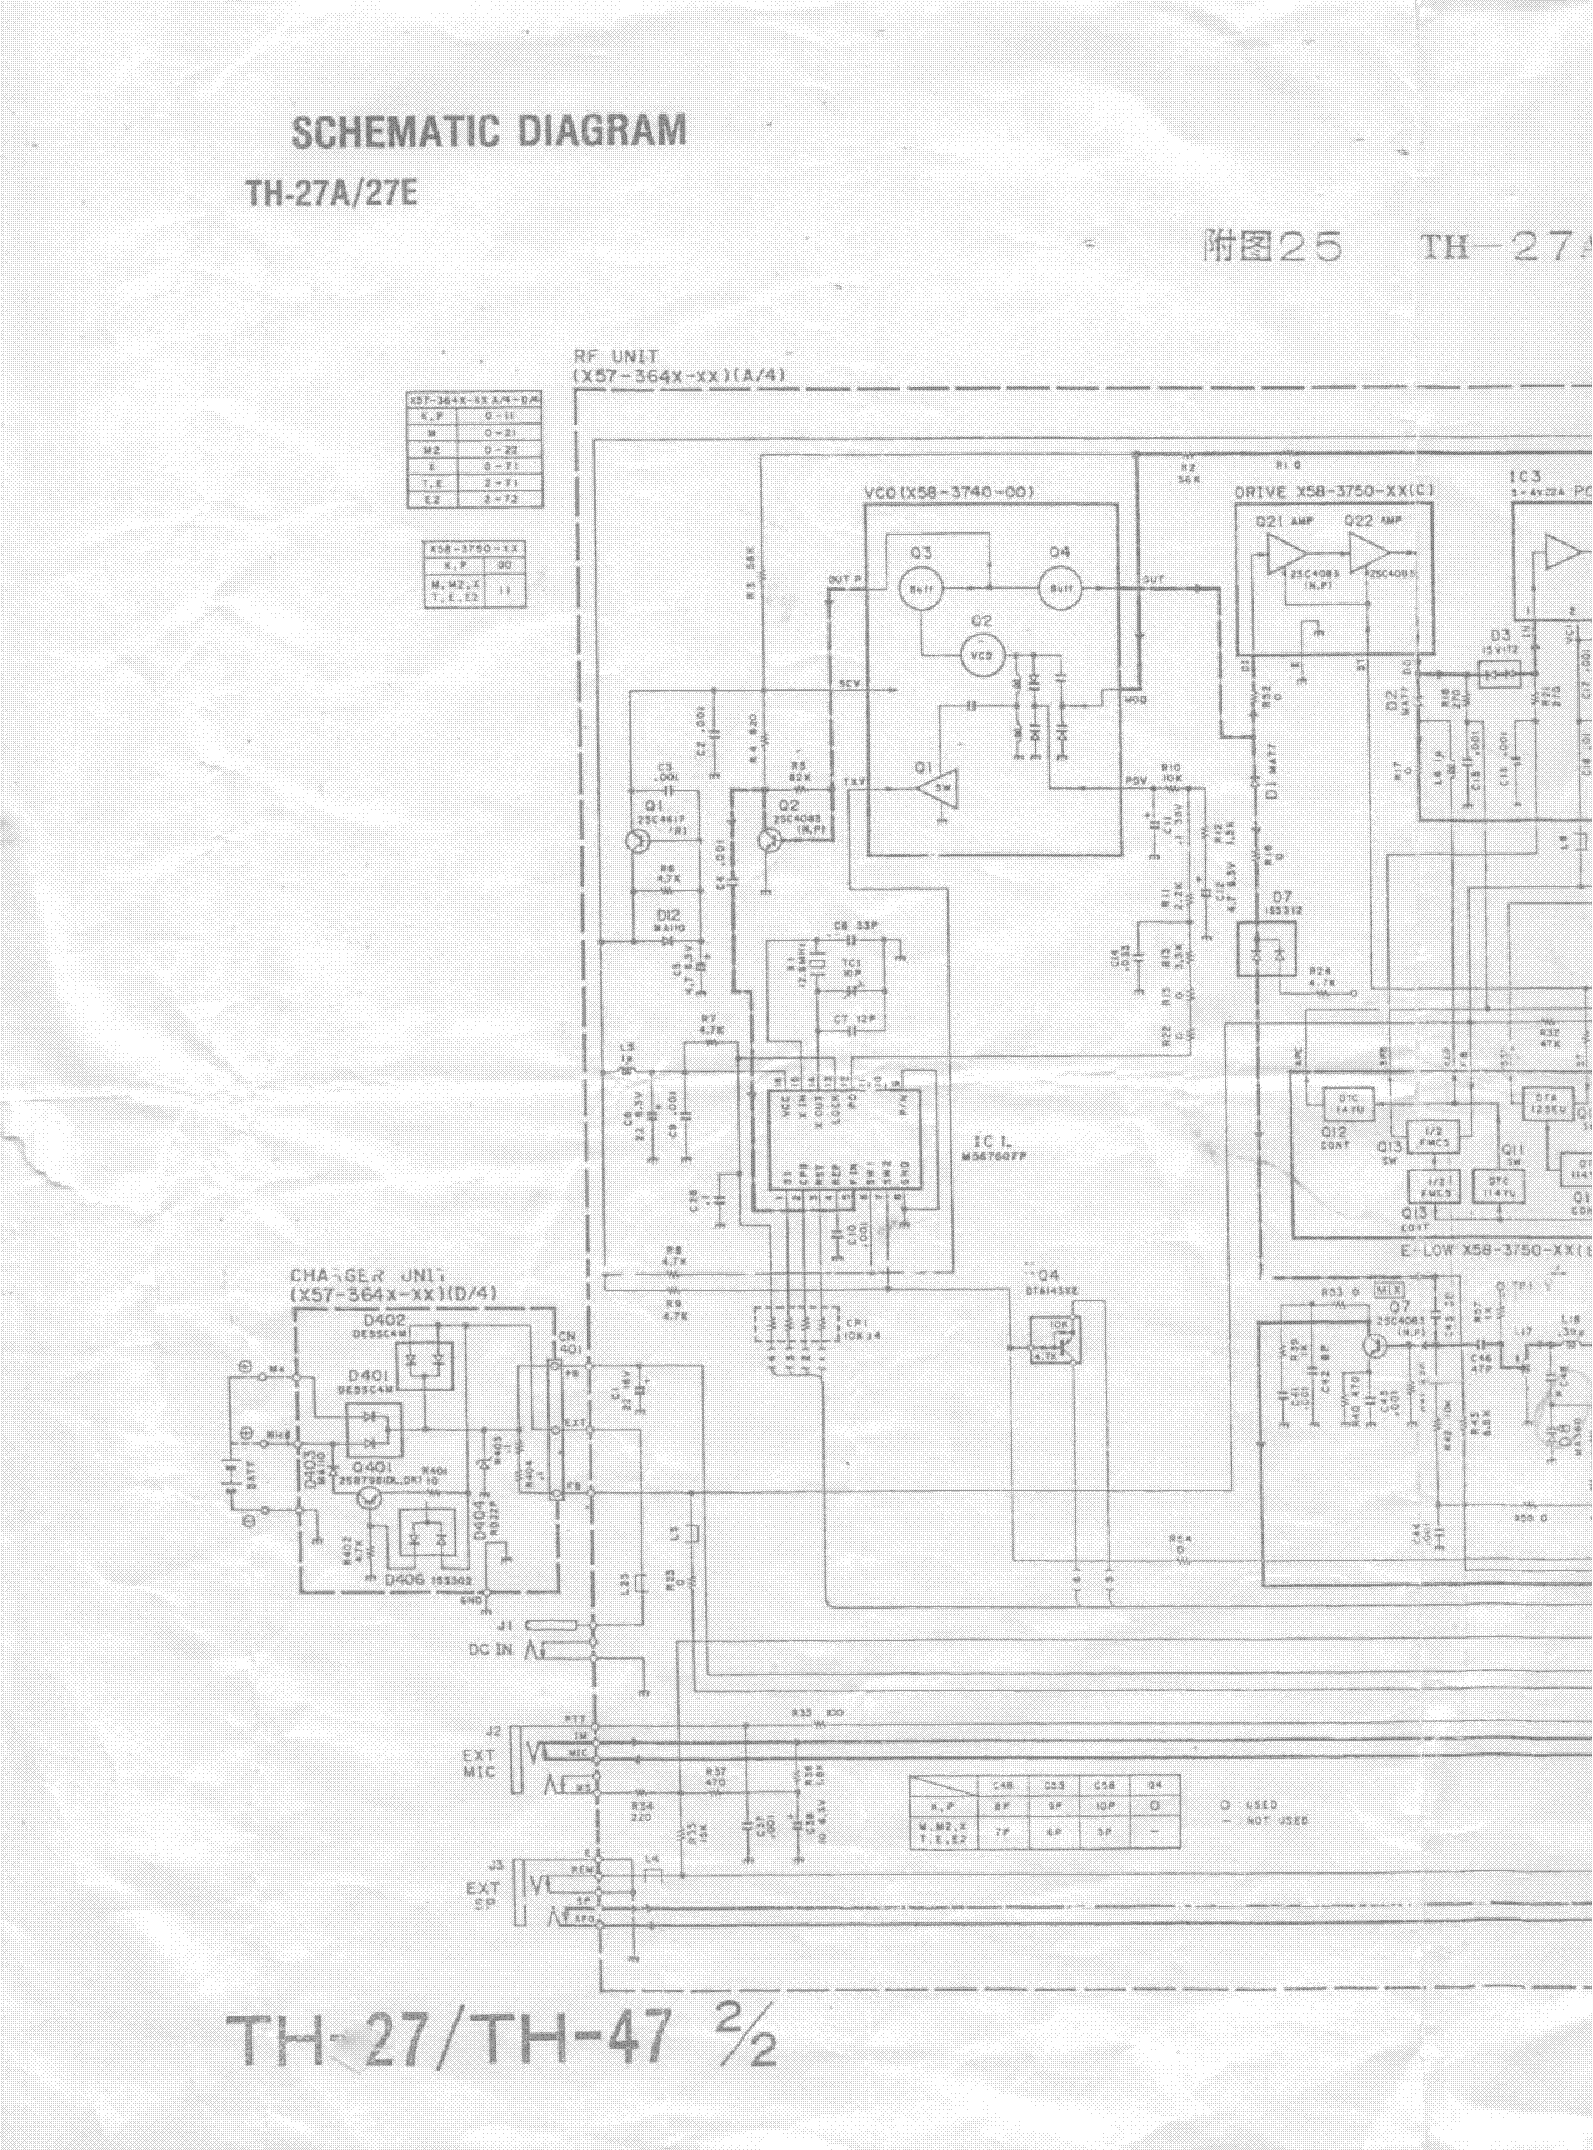 KENWOOD TH-27A TH27E service manual (1st page)